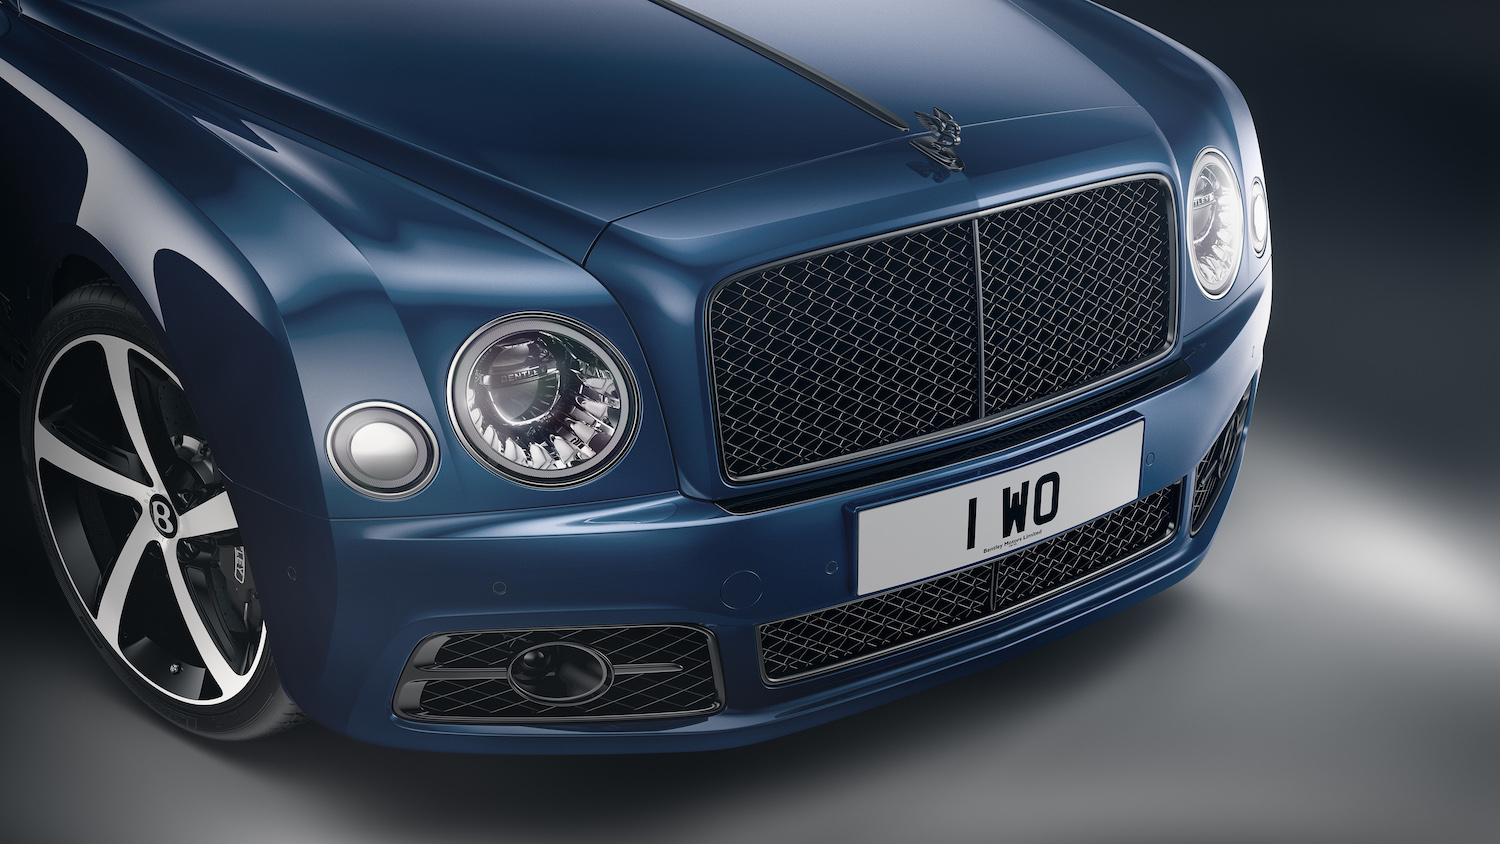 front grille close-up